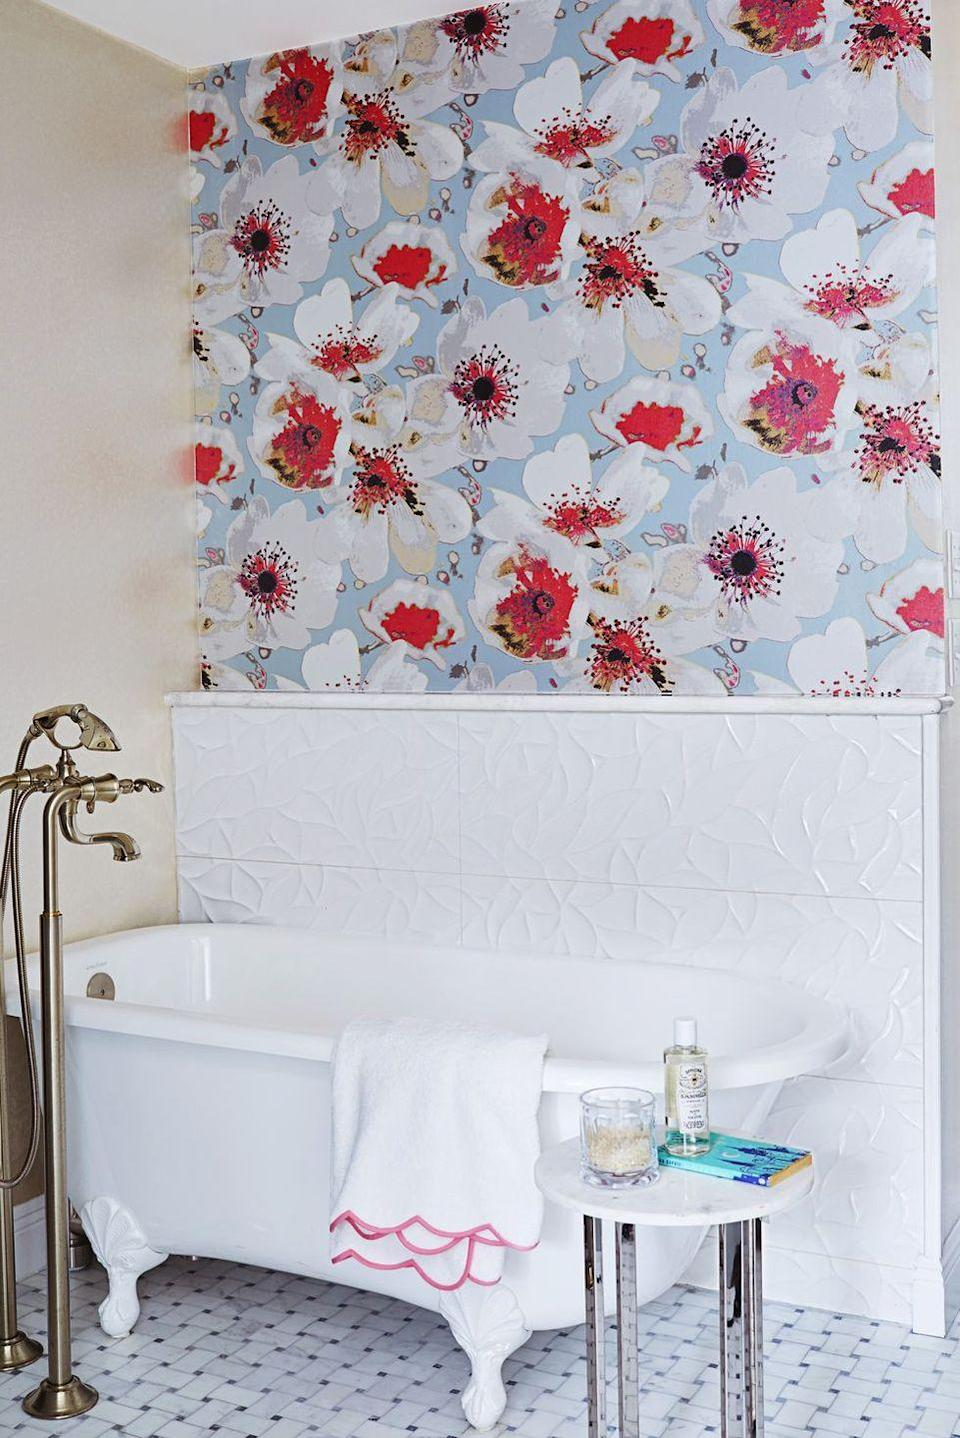 <p>If there's one room that can benefit from a dose of drama, it's the bathroom. A wallpaper boasting bold blooms is a no-fail option for a quick refresh.</p>